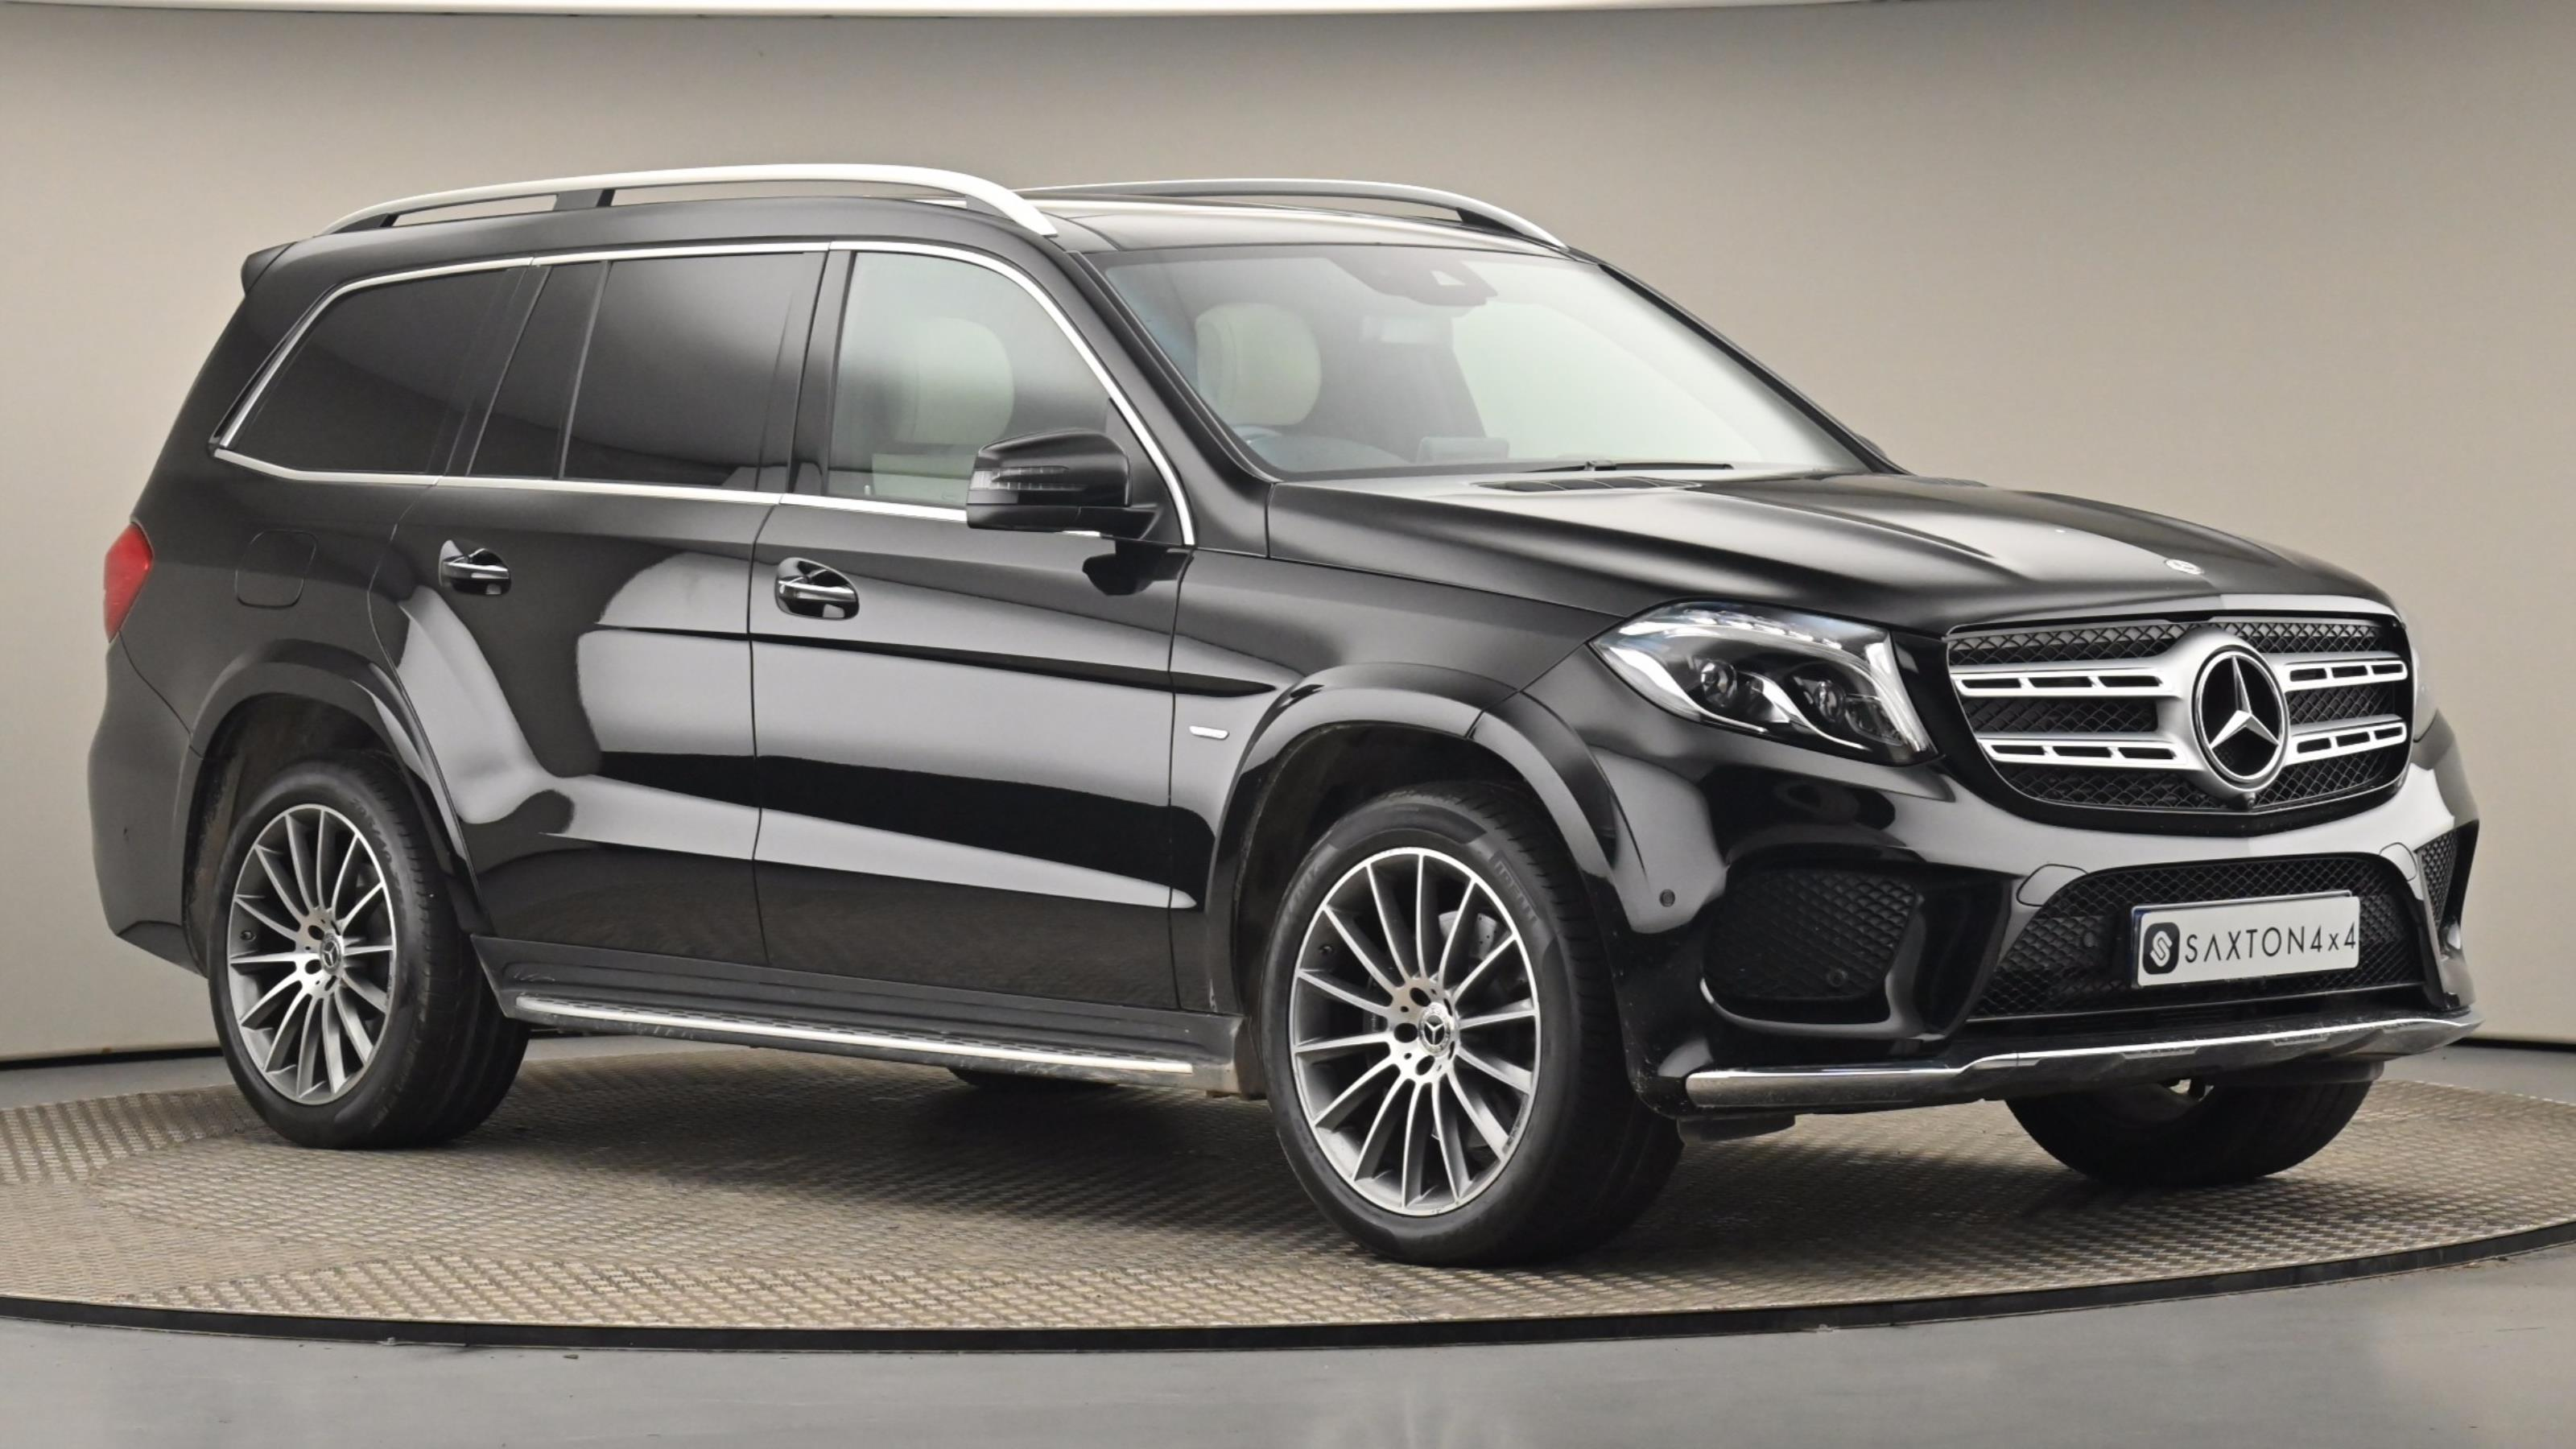 Used 2018 Mercedes-Benz GLS GLS 350d 4Matic Grand Edition 5dr 9G-Tronic at Saxton4x4